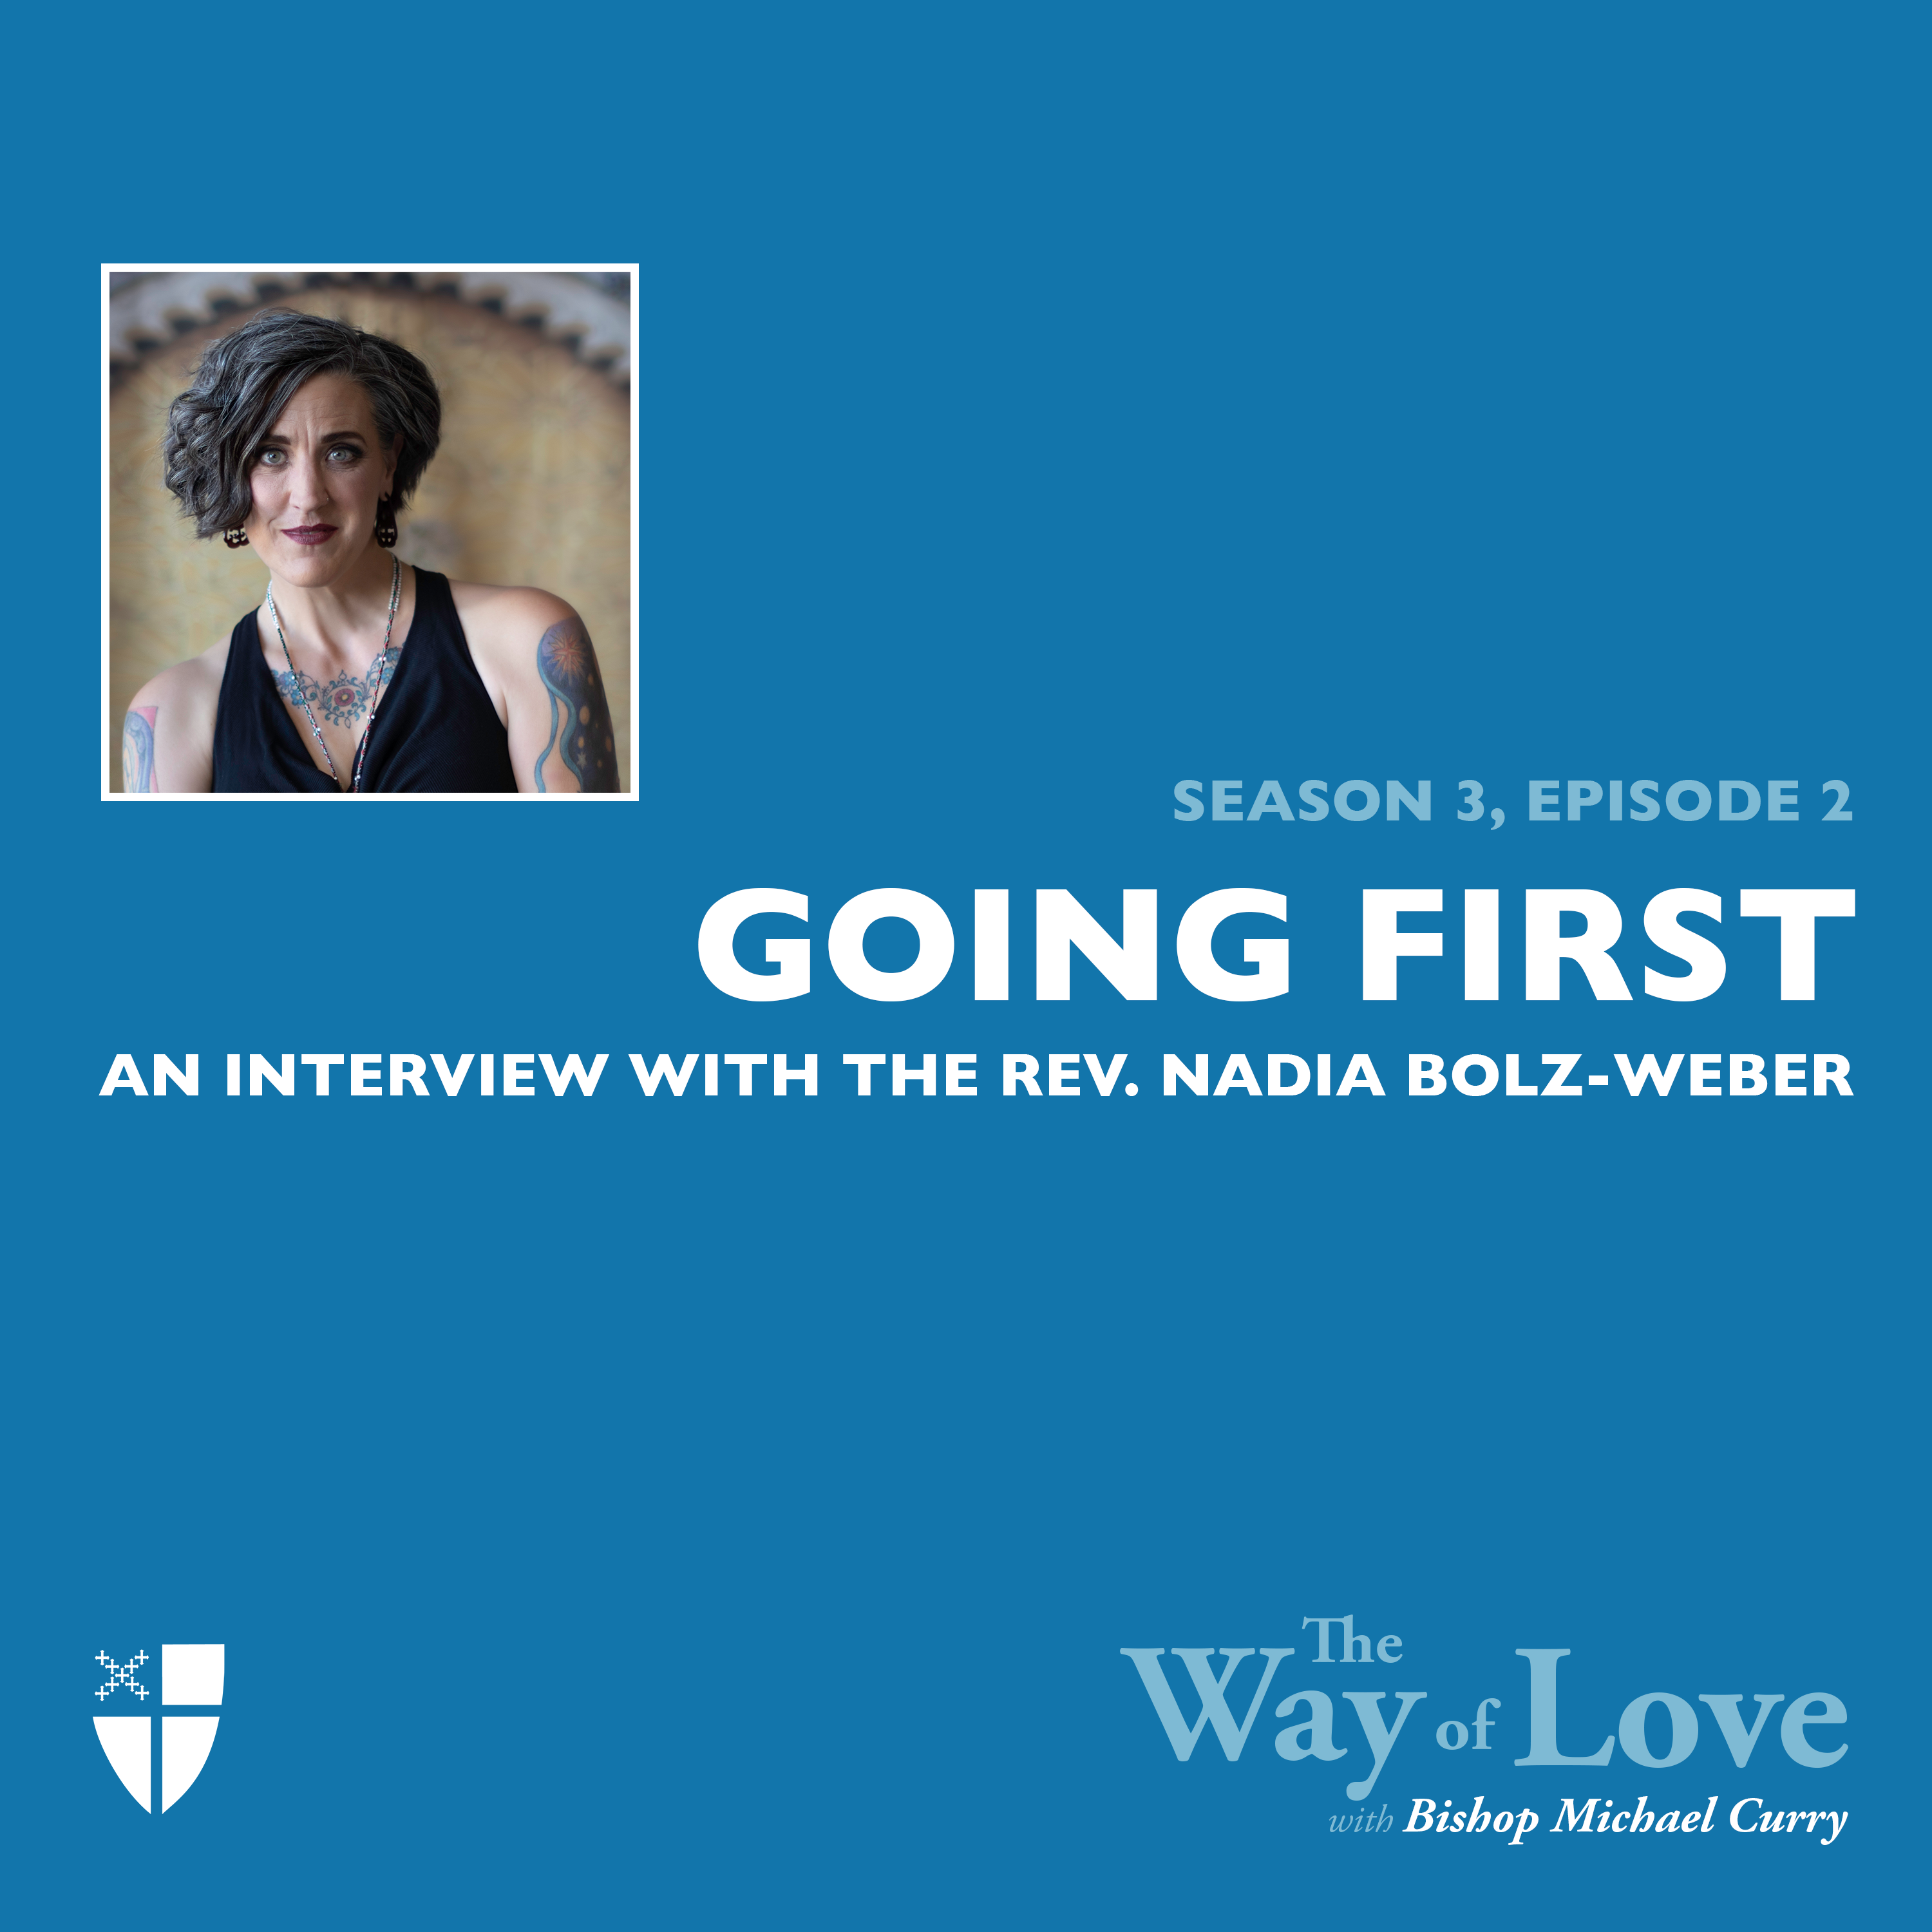 Going First with the Rev. Nadia Bolz-Weber